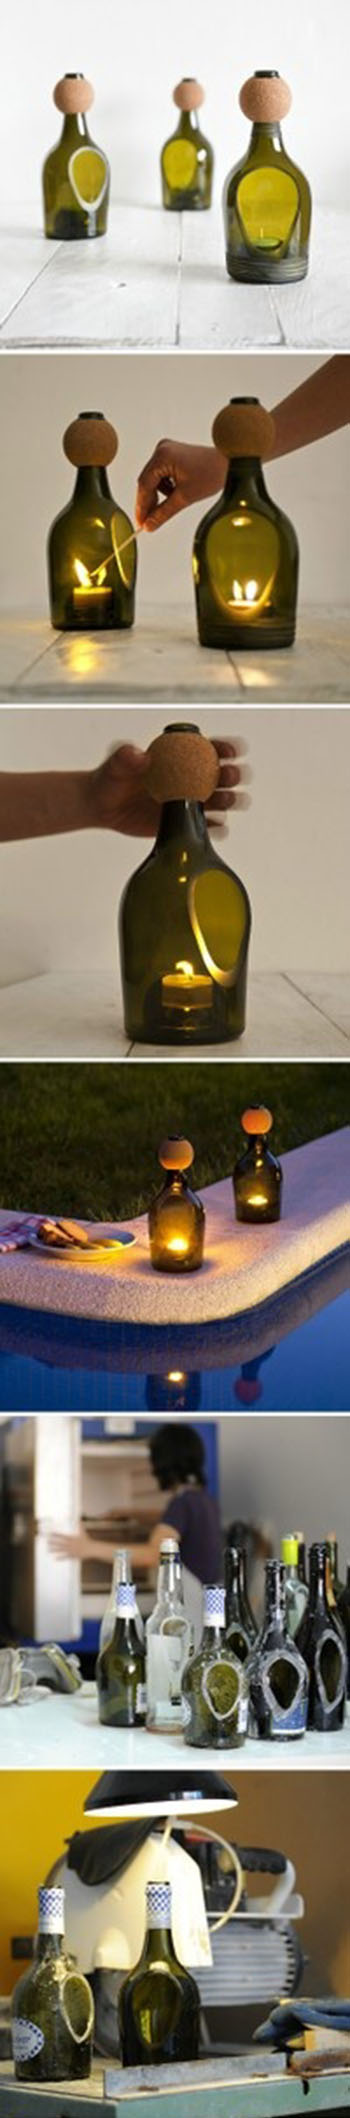 DIY Bottle Lantern11